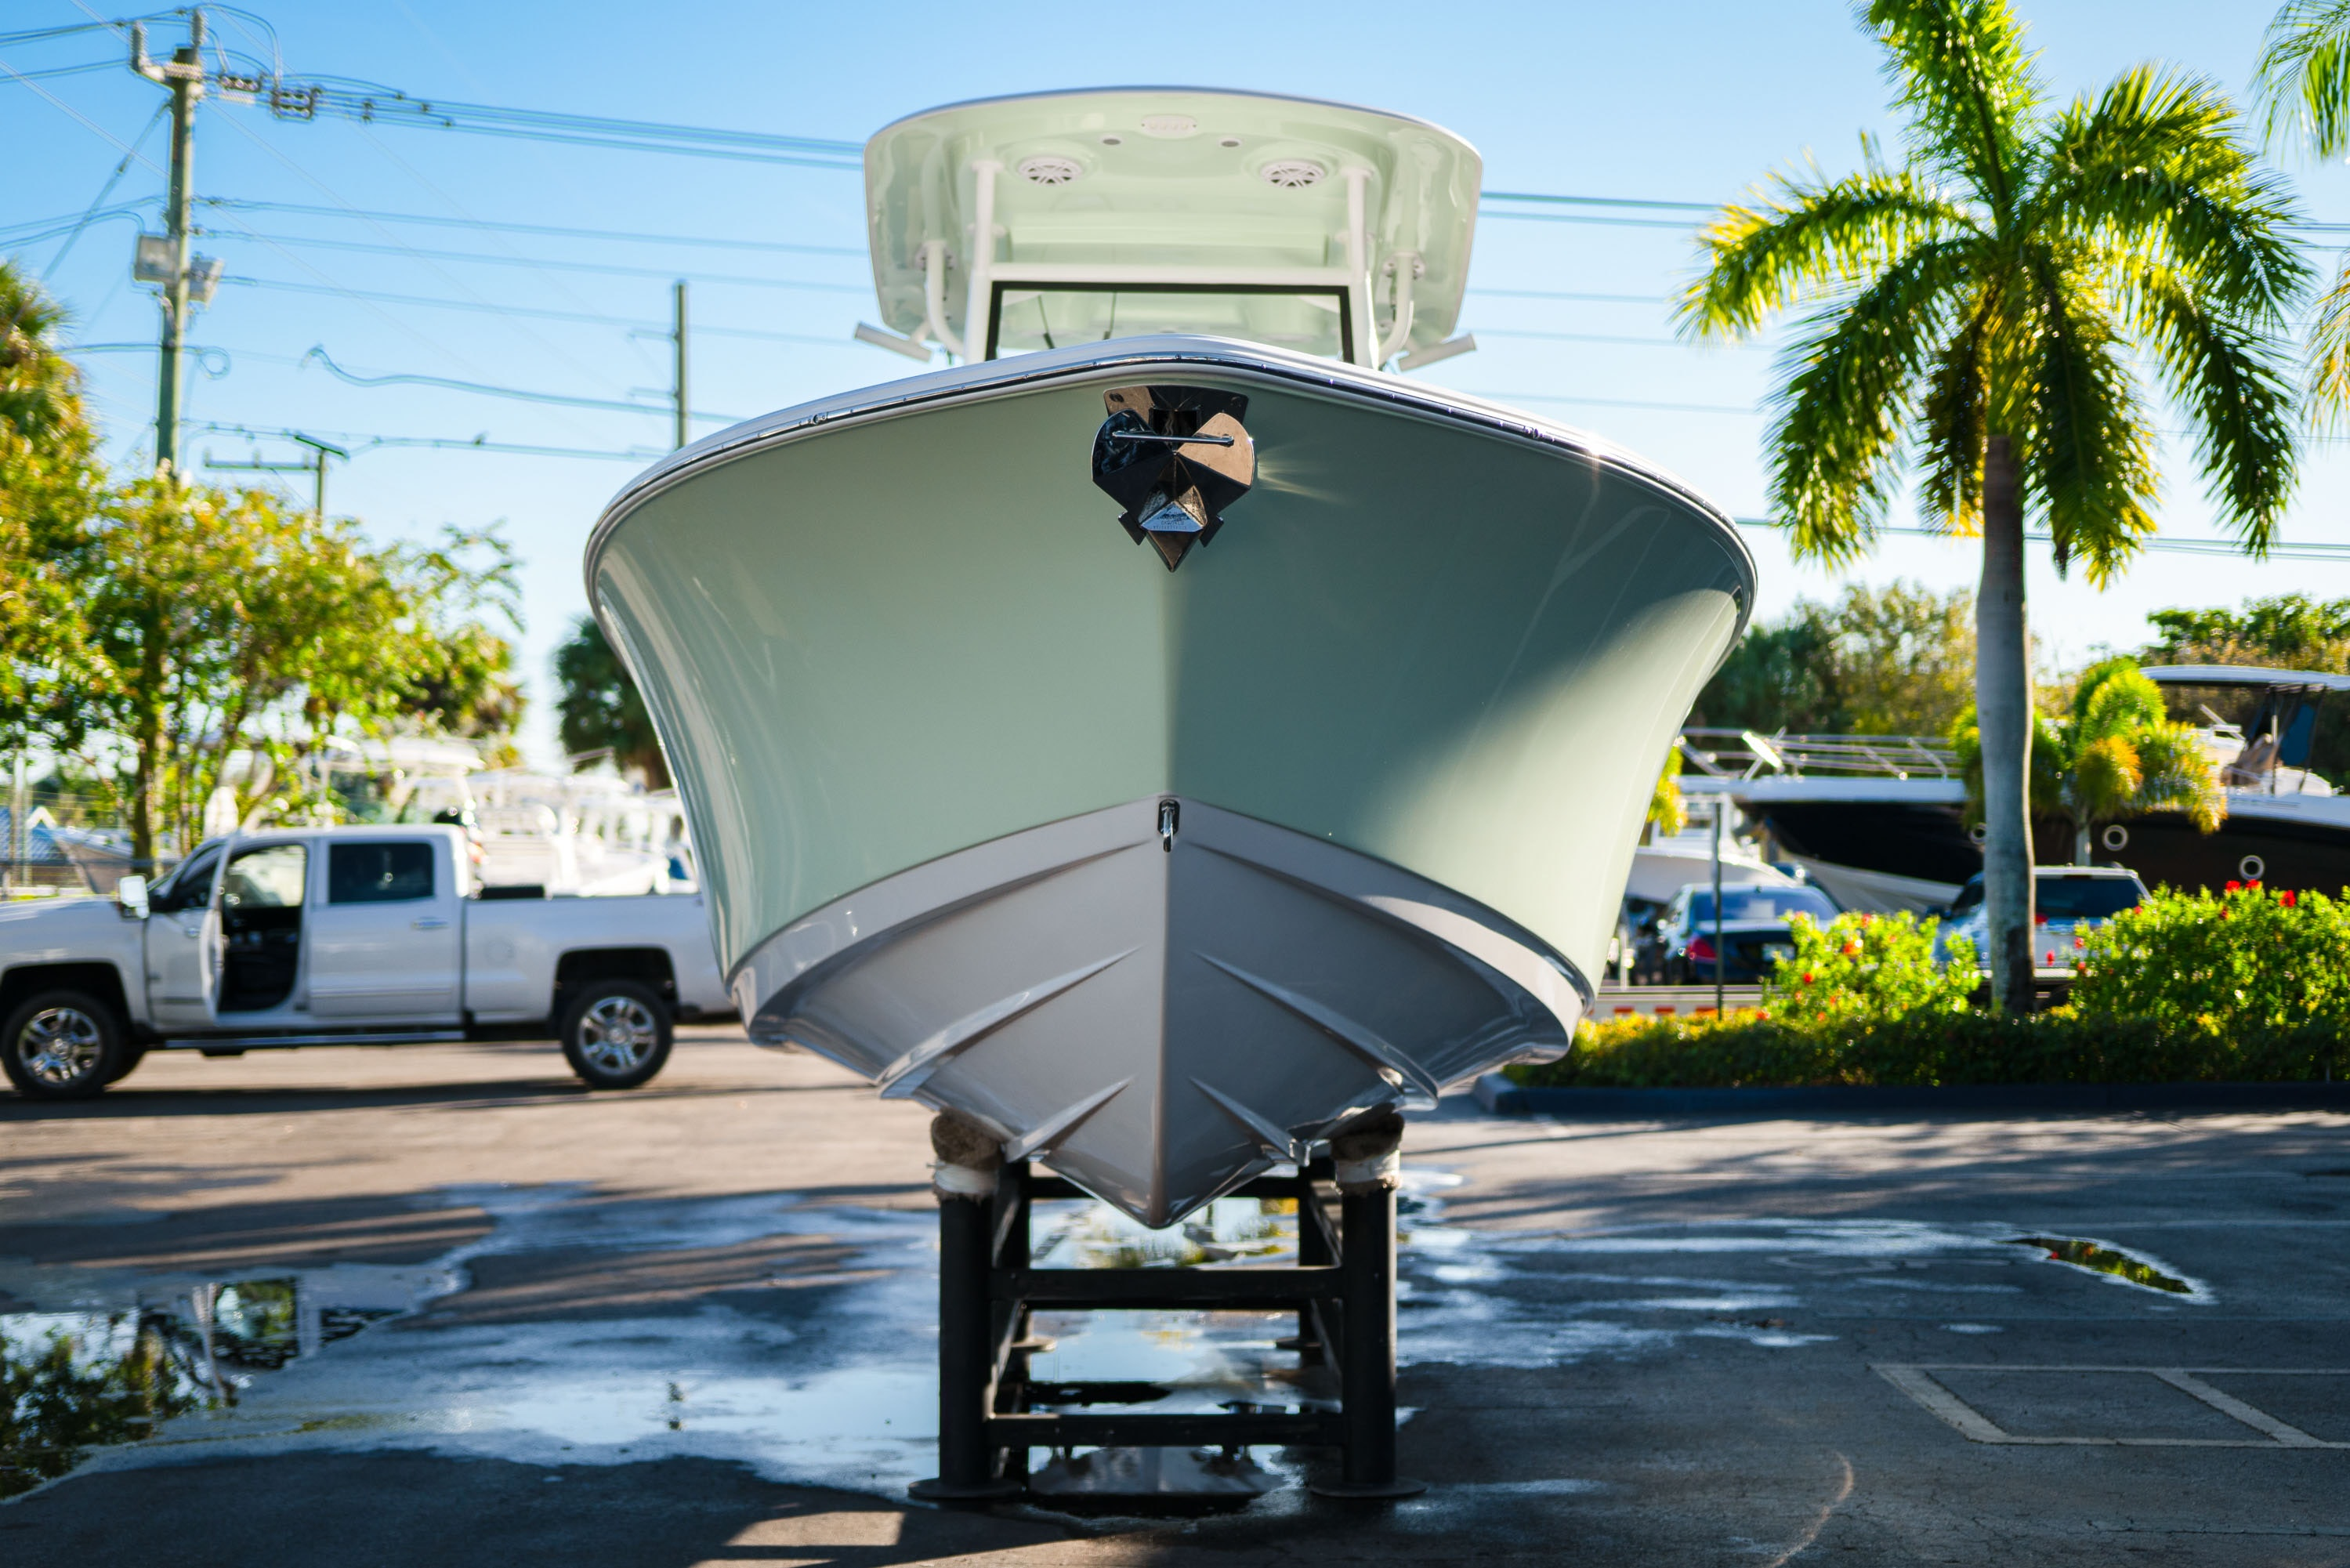 Thumbnail 2 for New 2020 Sportsman Open 282TE Center Console boat for sale in West Palm Beach, FL